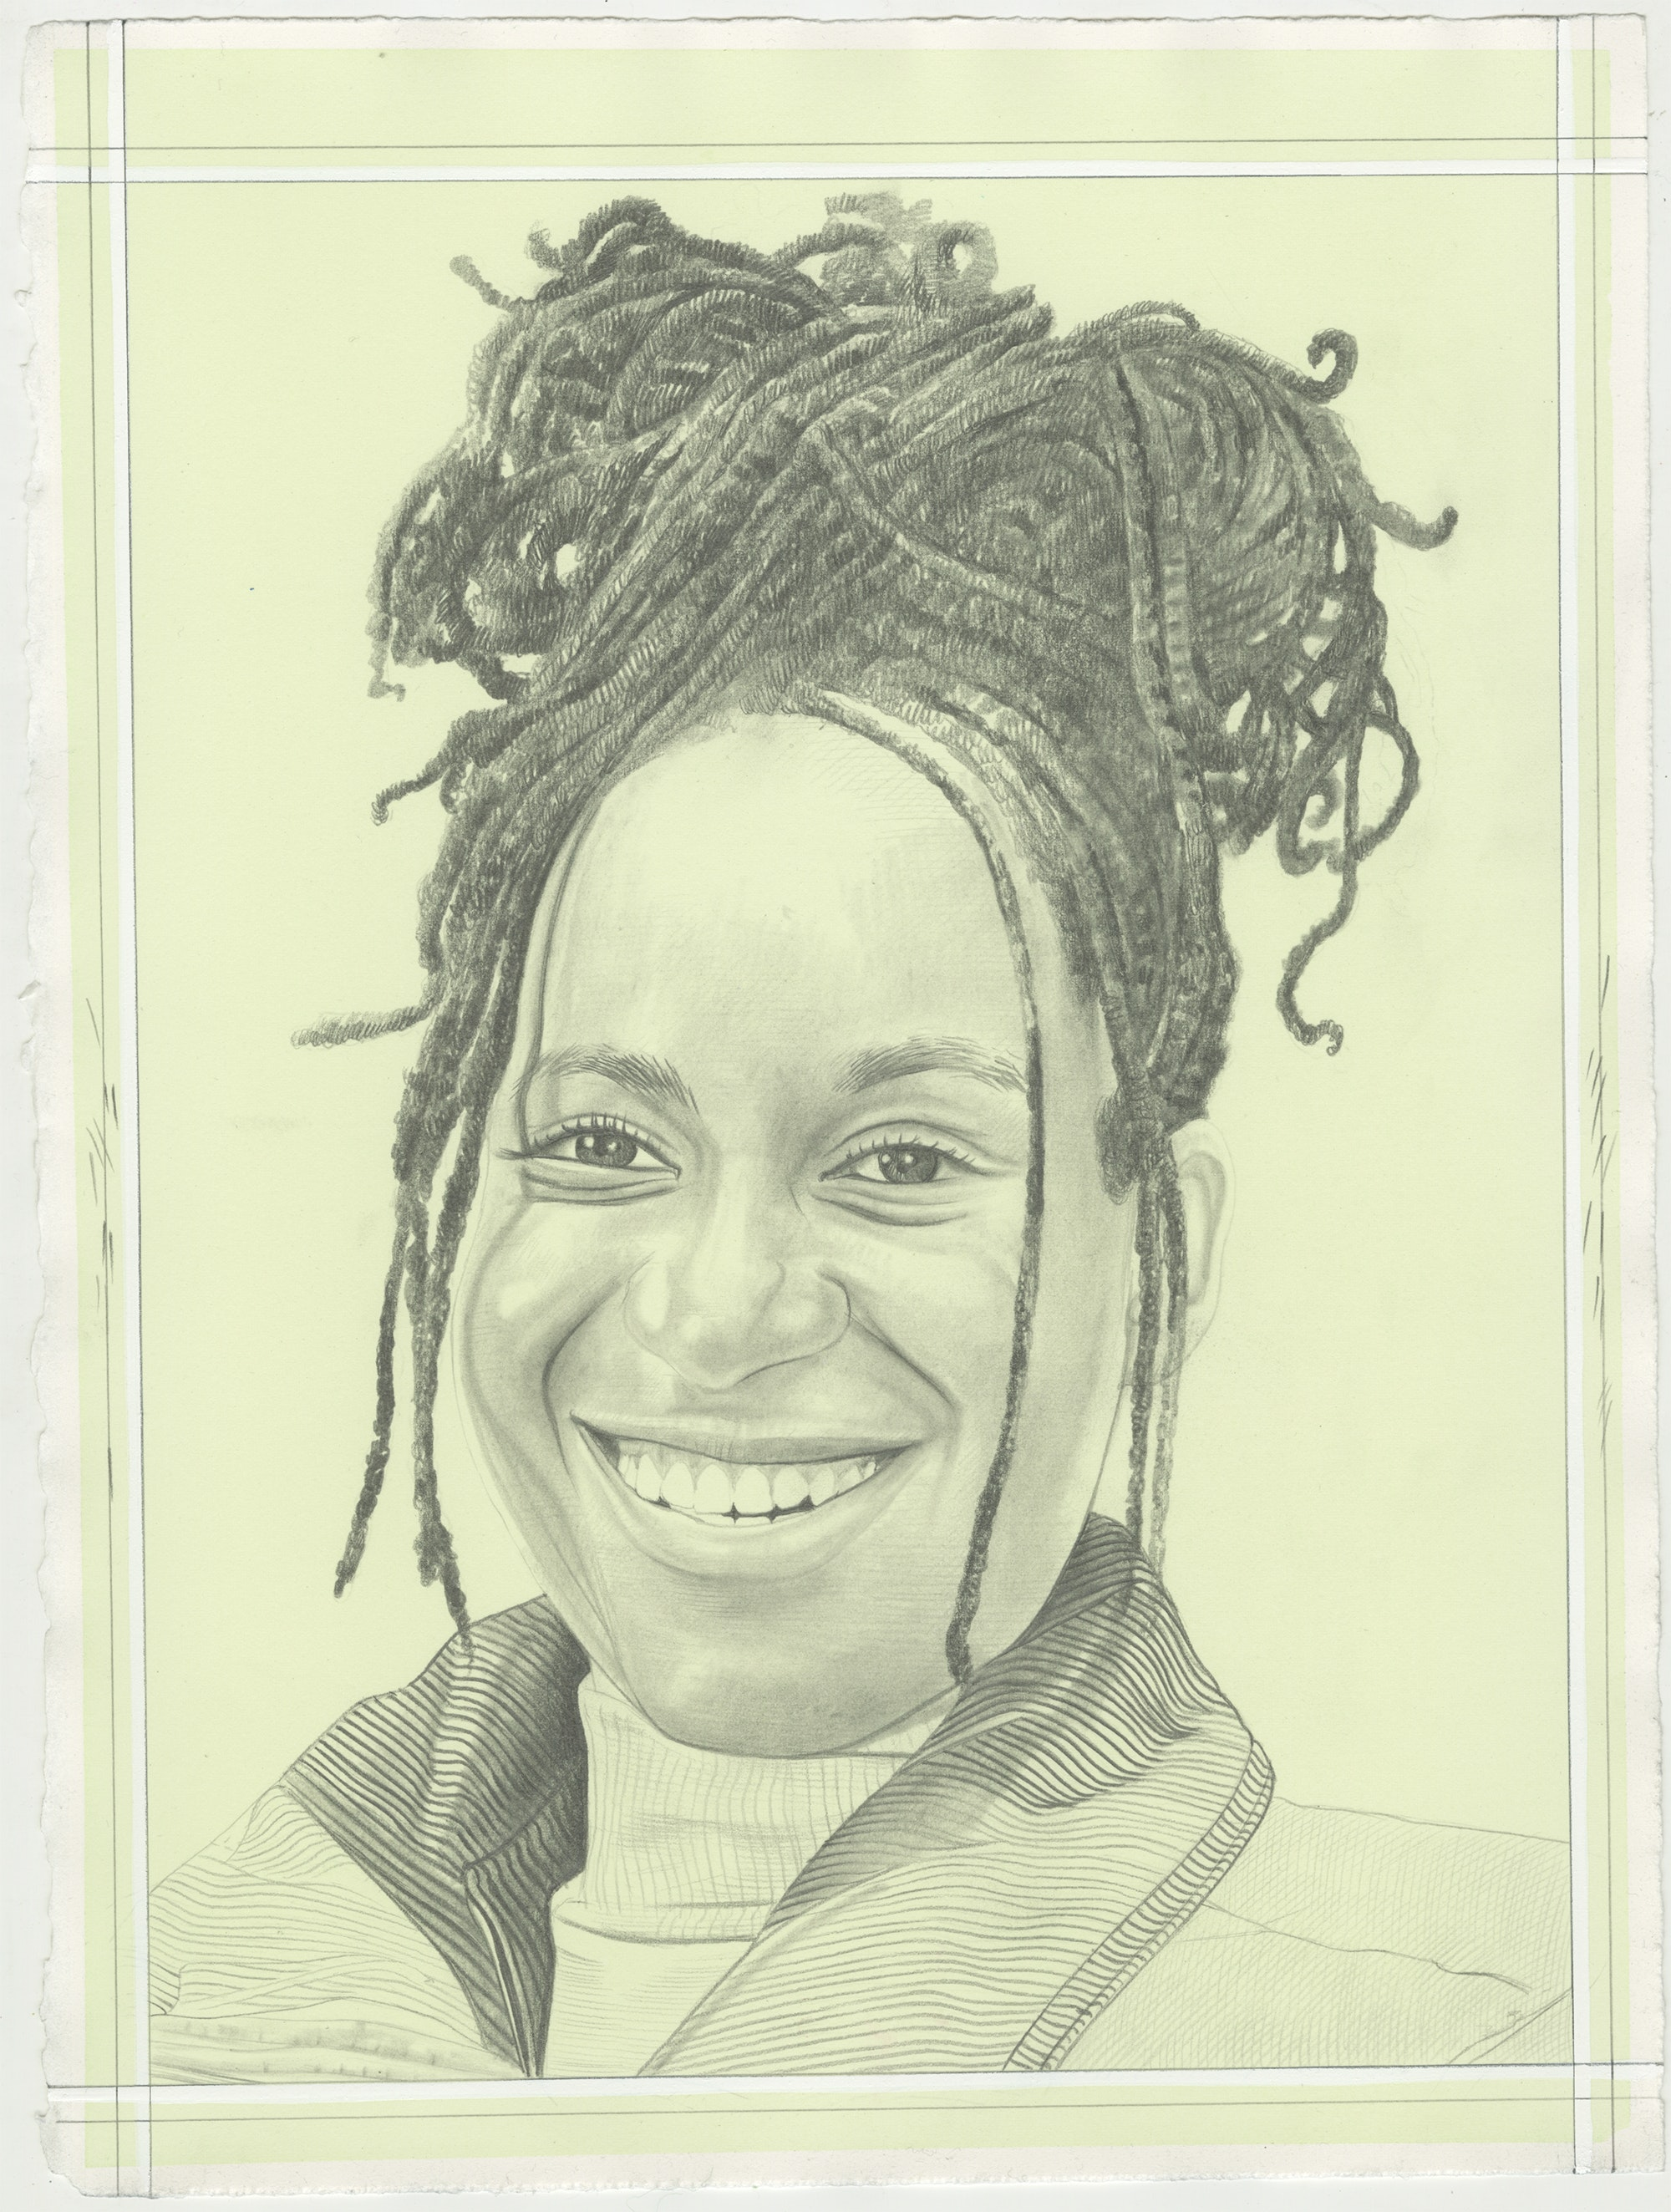 Portrait of Tschabalala Self, pencil on paper by Phong H. Bui.